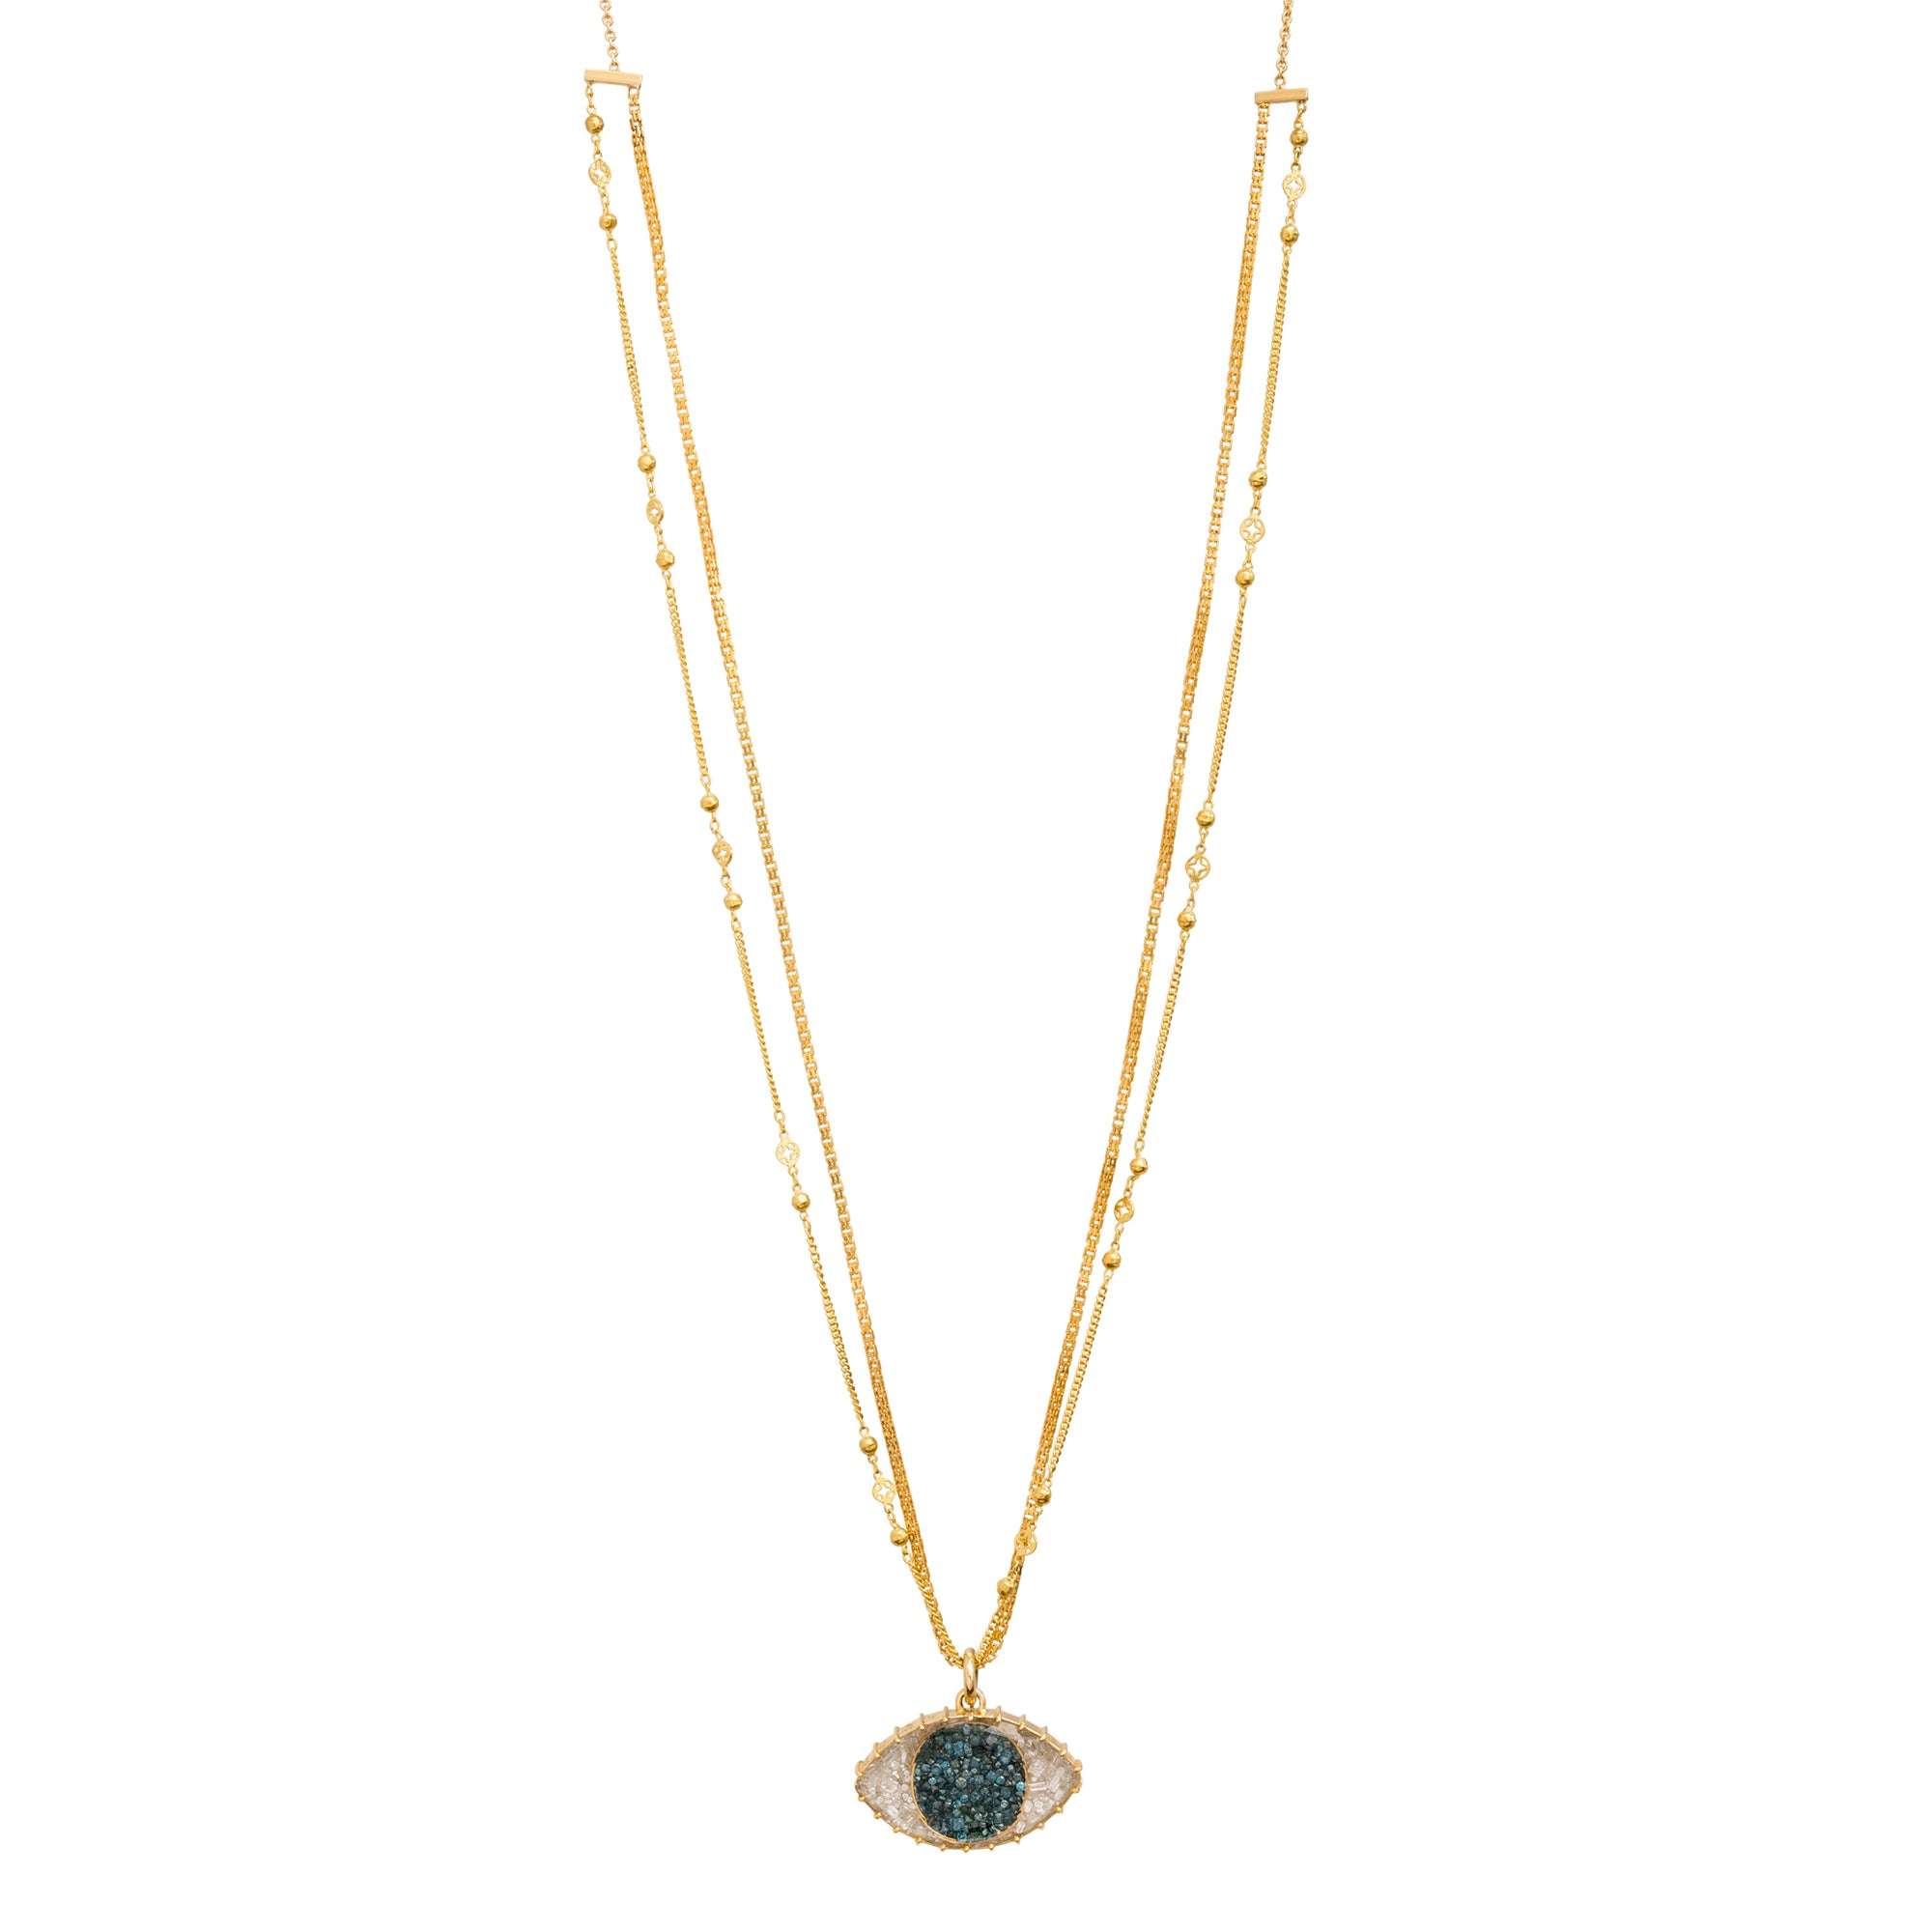 Third Eye Shake Necklace by Renee Lewis for Broken English Jewelry